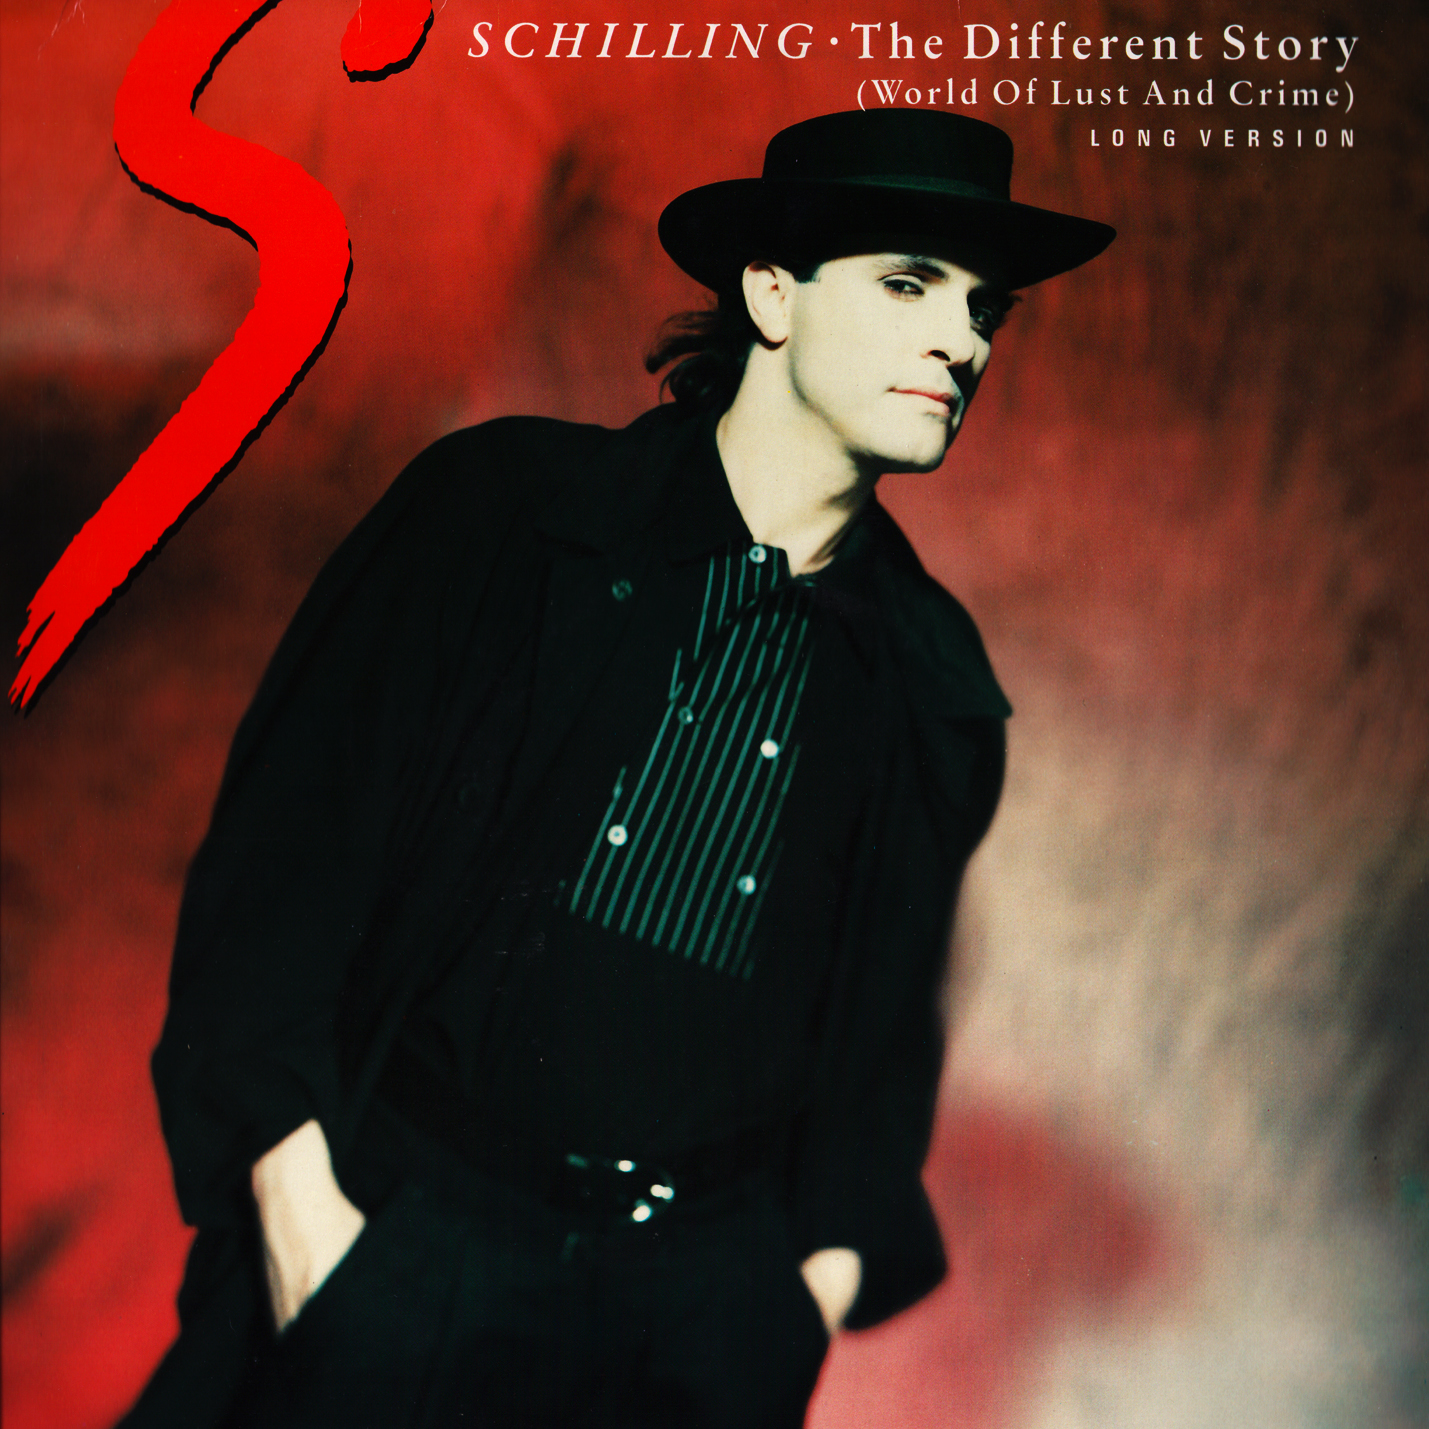 Peter Schilling - The Different Story - YouTube